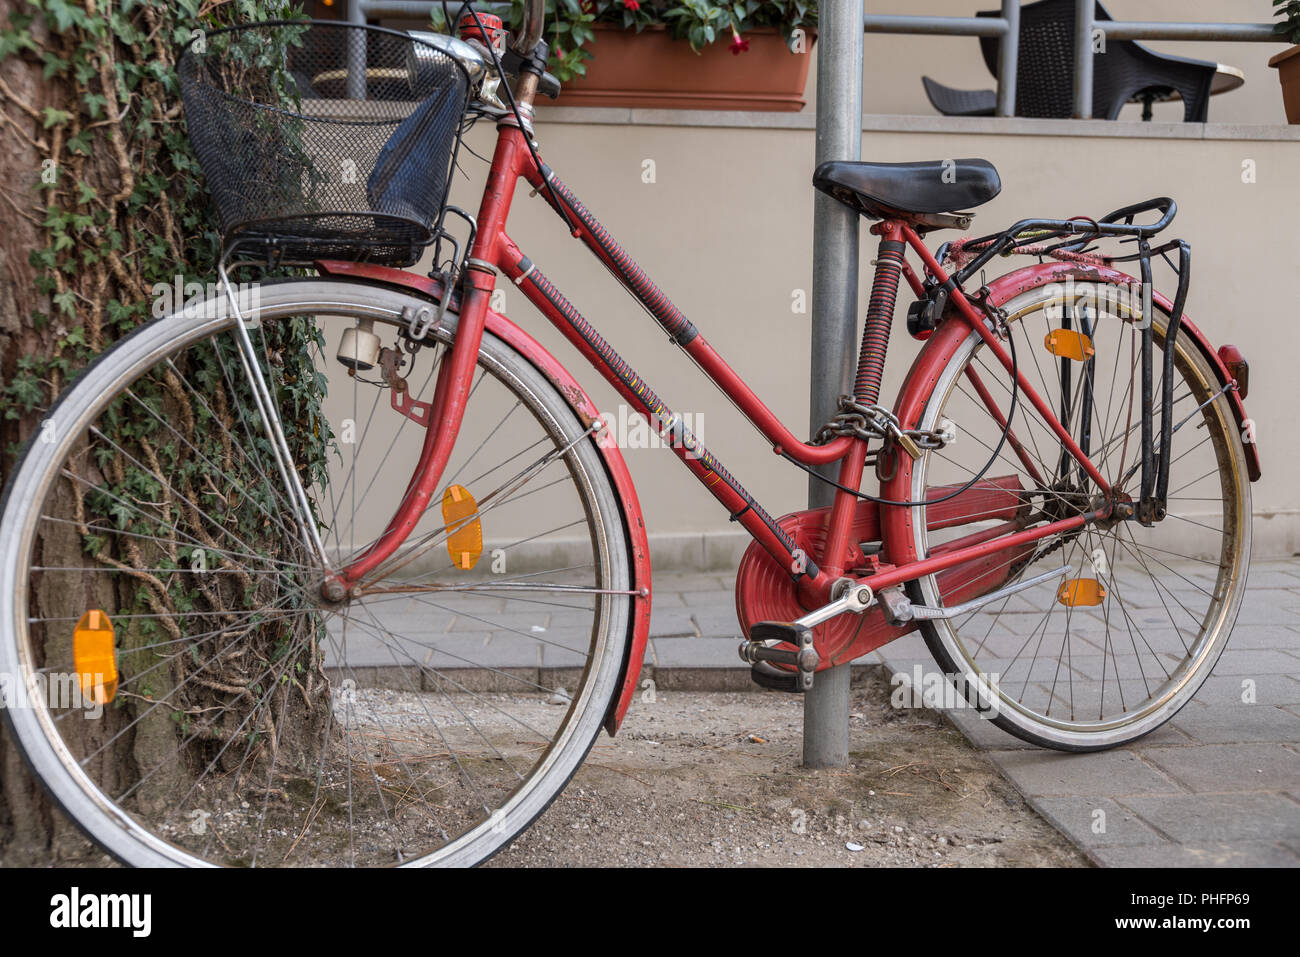 Bicycle locked and parked theft proof - Stock Image